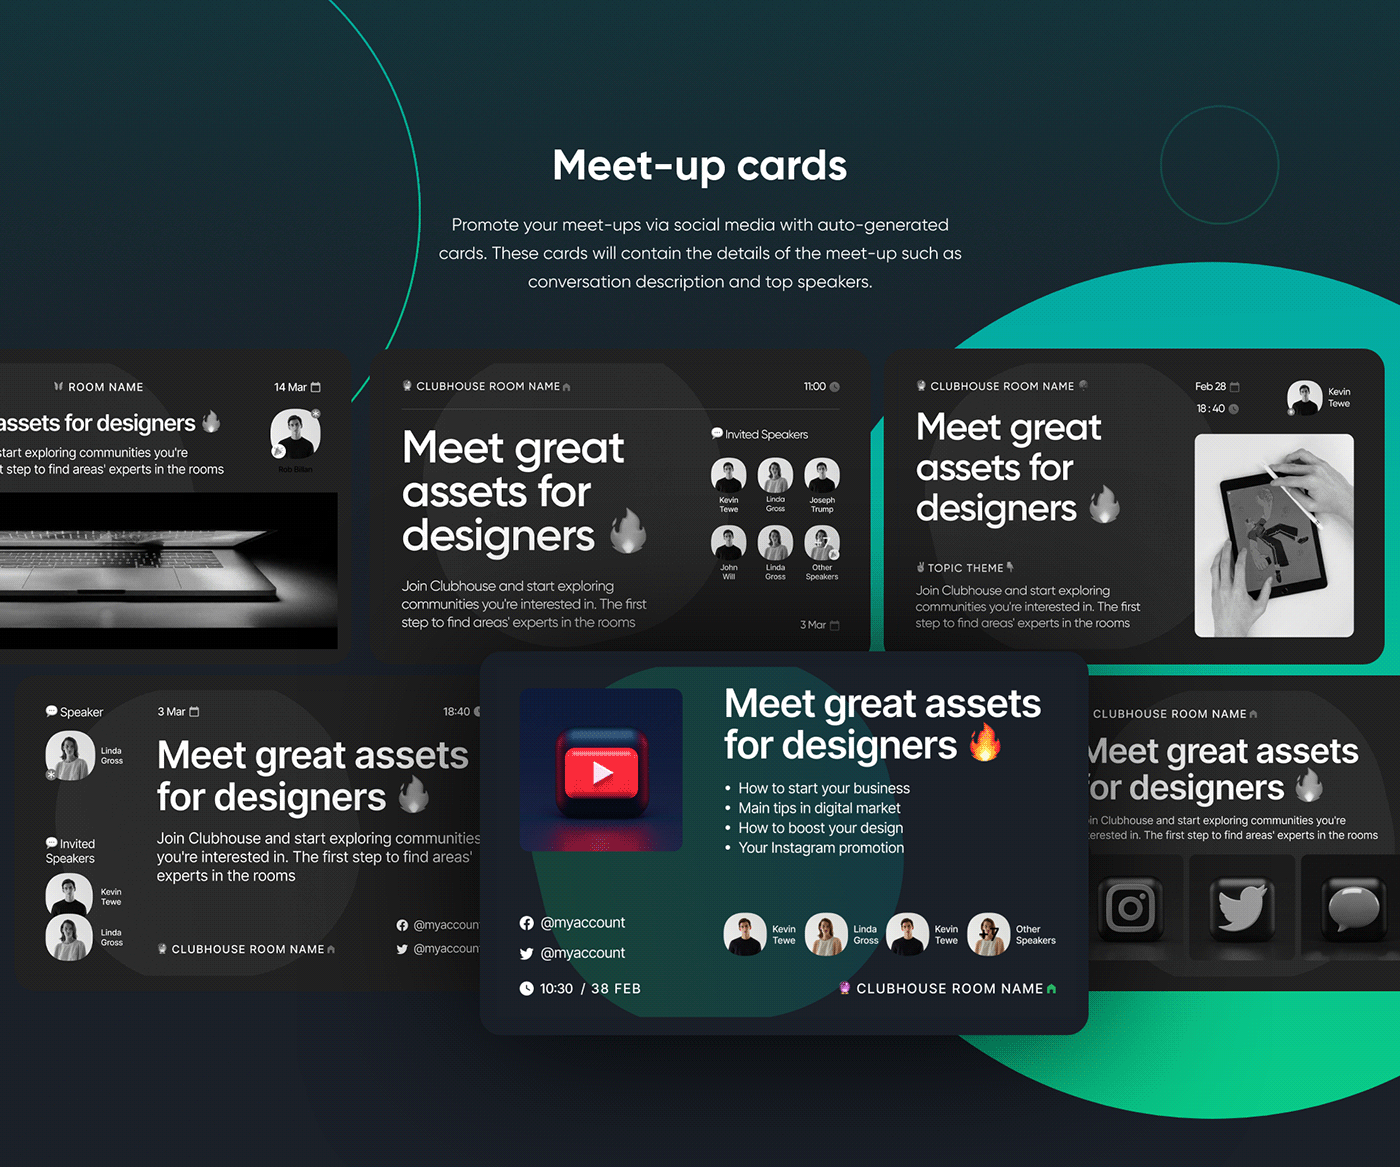 audio chat chat room Clubhouse dark mode Mobile app Podcasts redesign social media UI ux